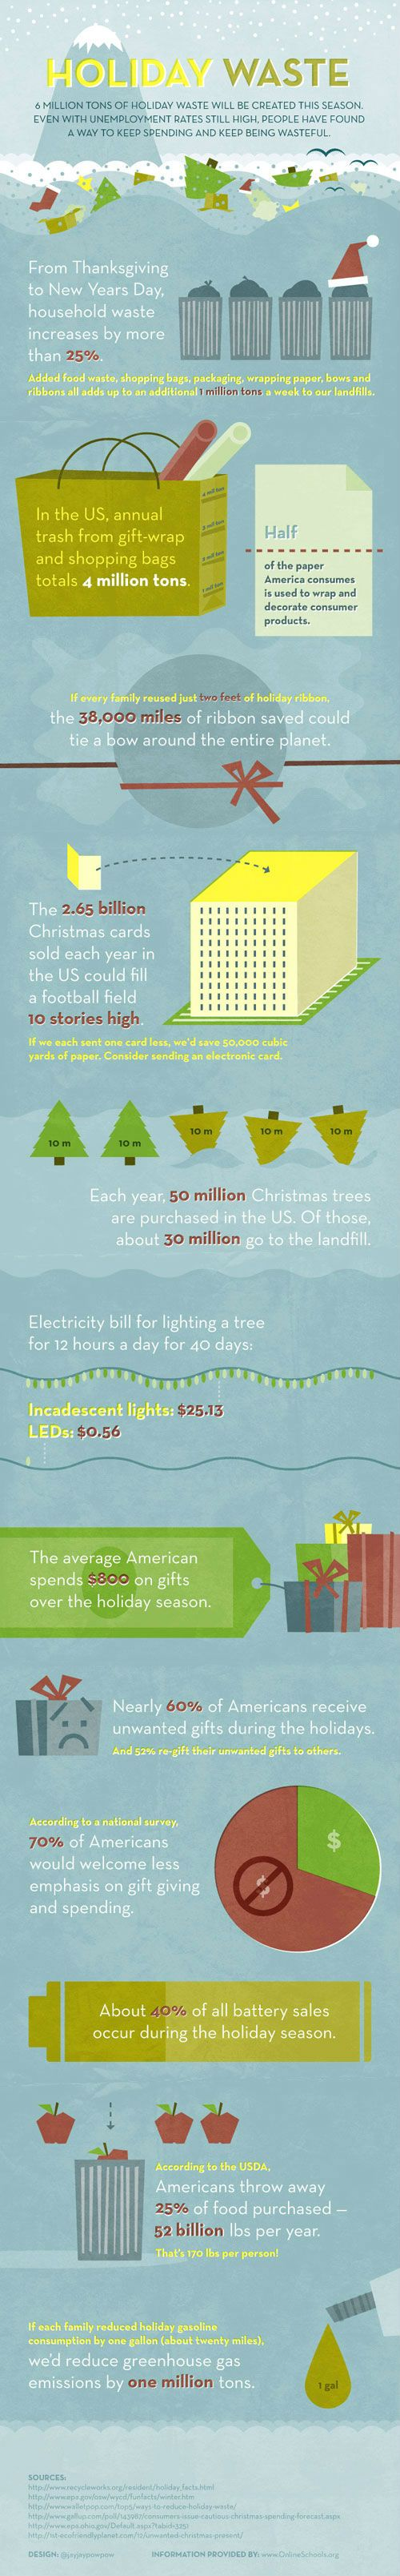 Holiday Waste: 6 Million Extra Tons to LandfillsDid you know that household waste increases by 25 percent between Thanksgiving and New Year's Day?  Between our regular household trash plus extra food and shopping waste, we send an additional million tons of waste to landfills every single week. That adds up to around six million tons of holiday waste by the end of the year.